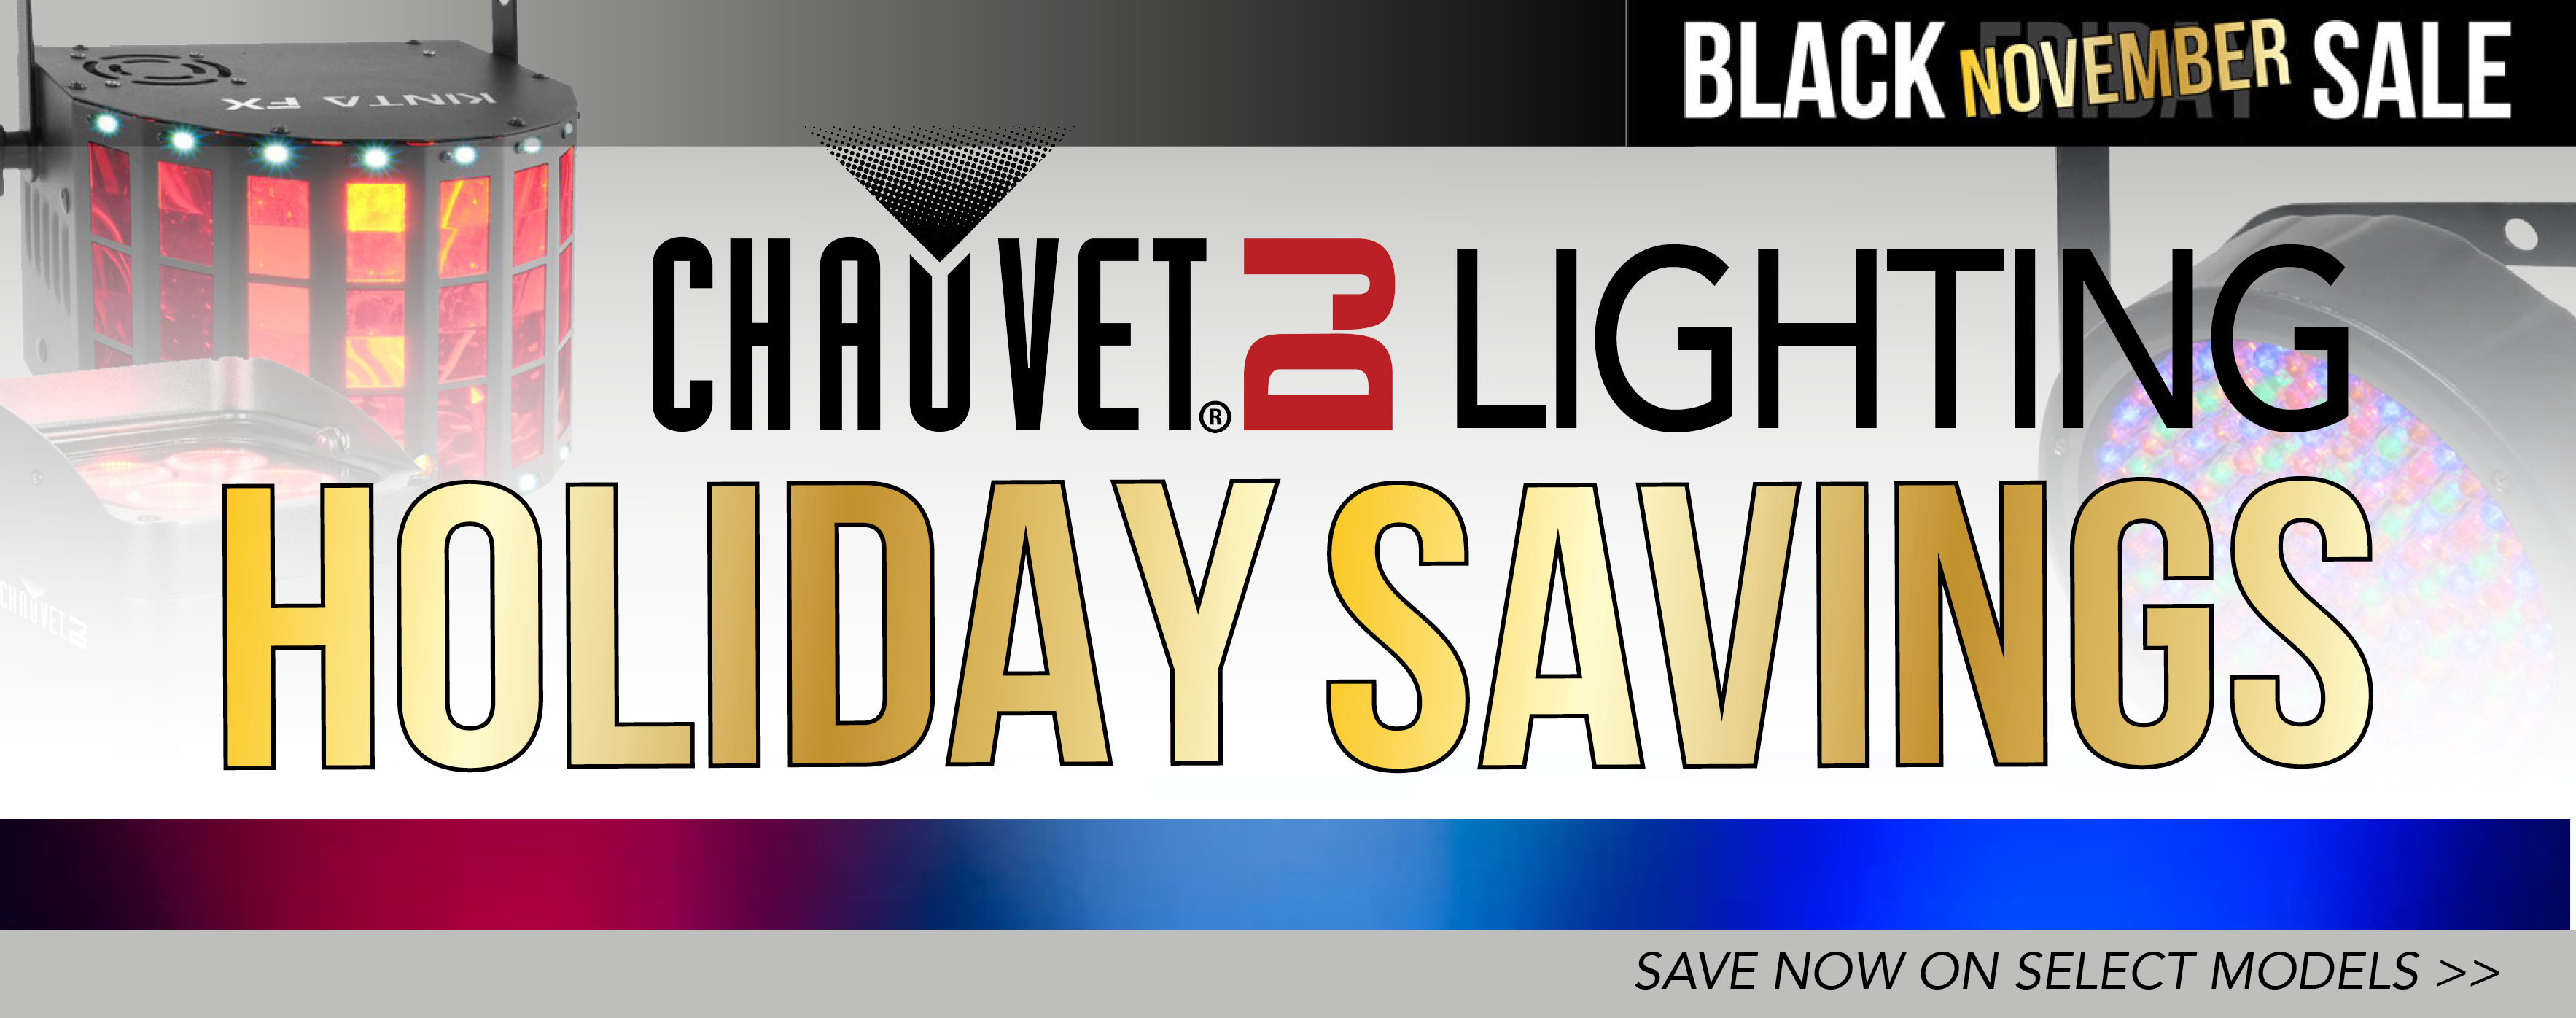 Chauvet Winter Holiday Sale 2019